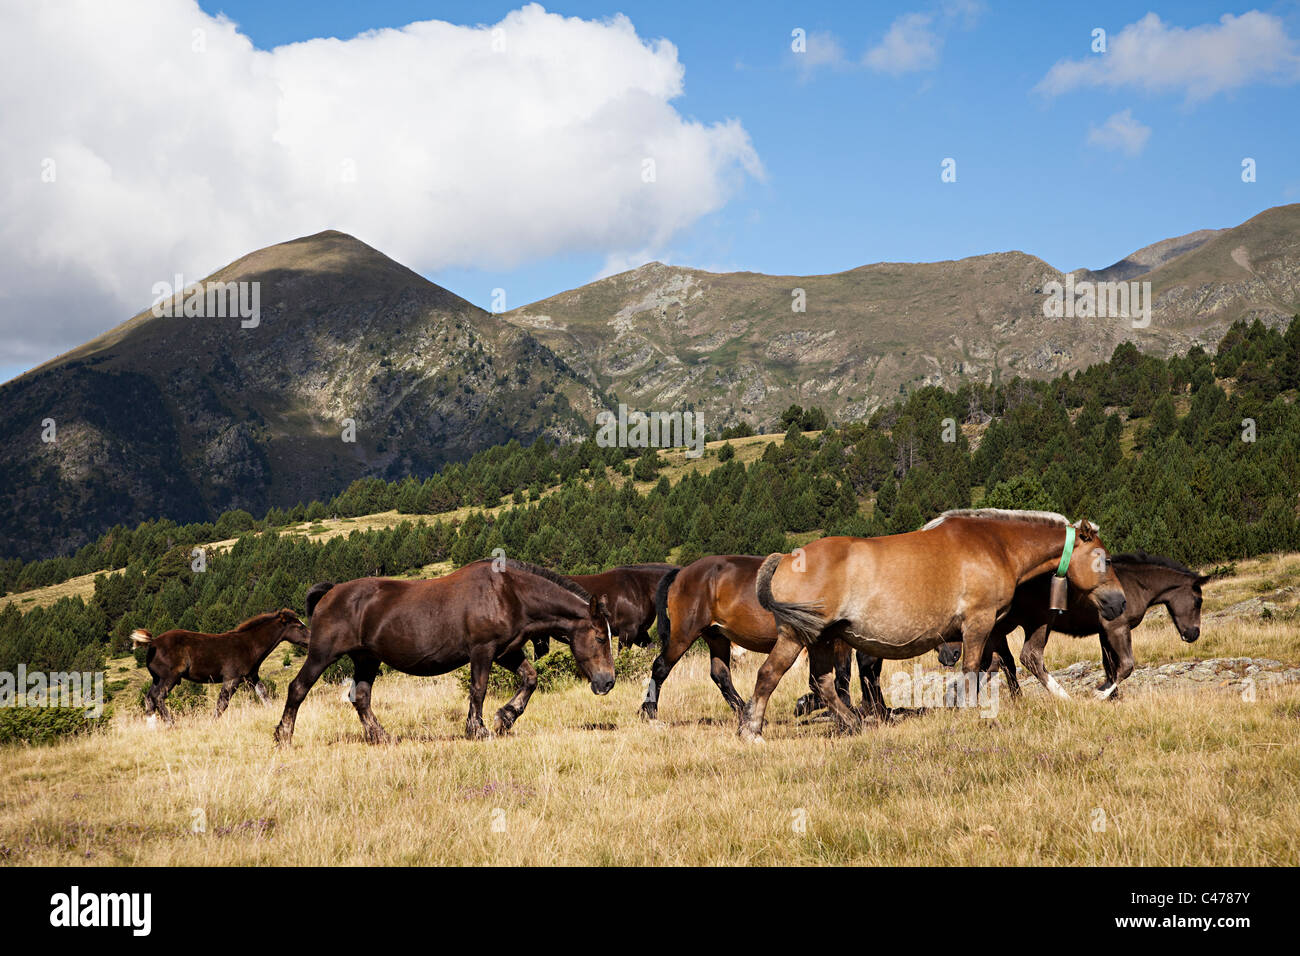 Horses wearing bells in the mountainsVall d'Incles Andorra - Stock Image